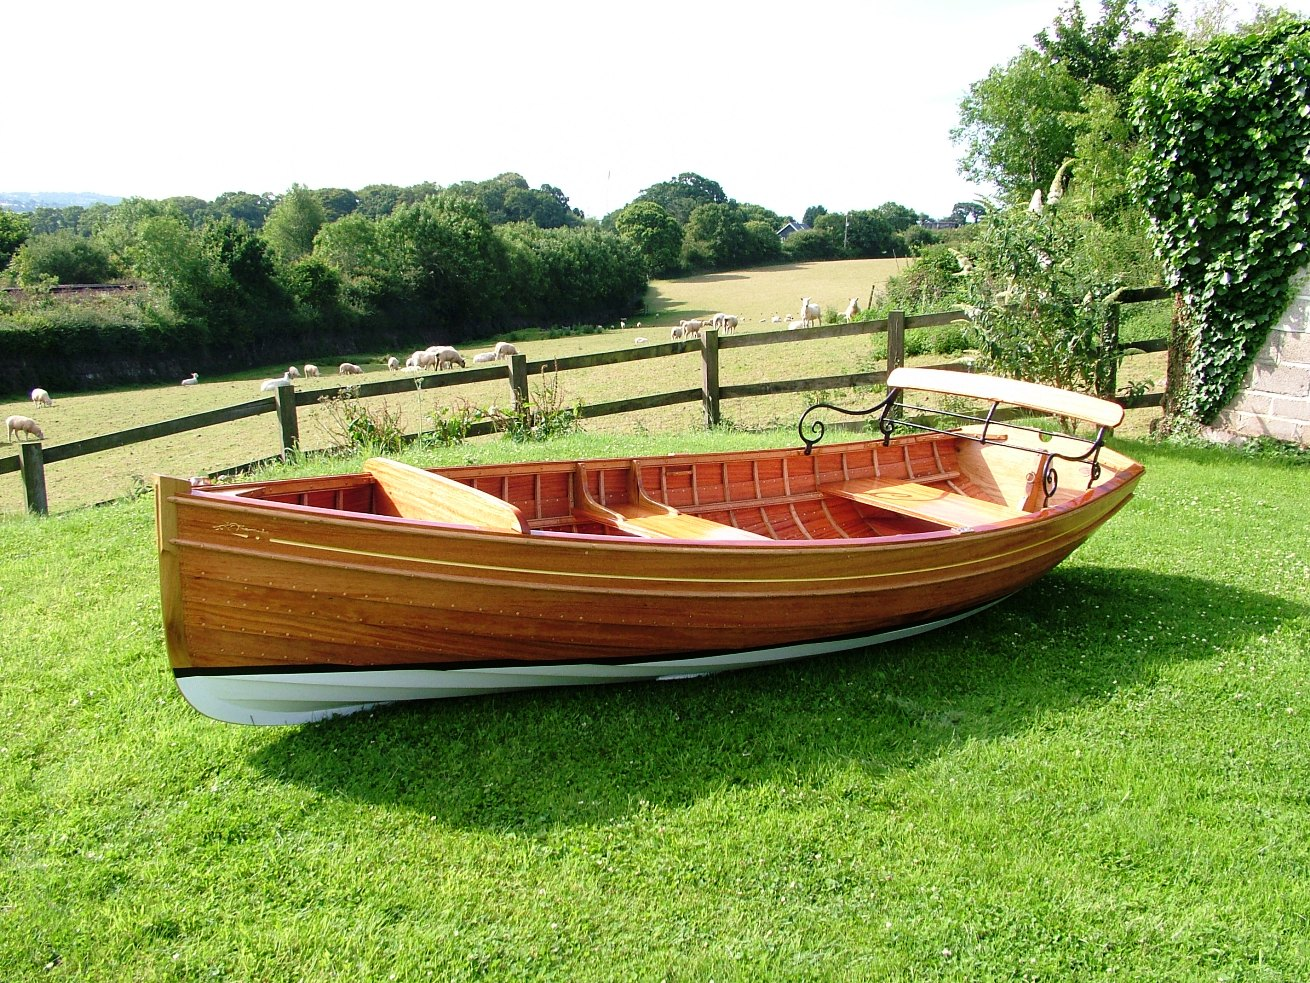 Thames rowing skiff built by Stirling & Son | intheboatshed.net